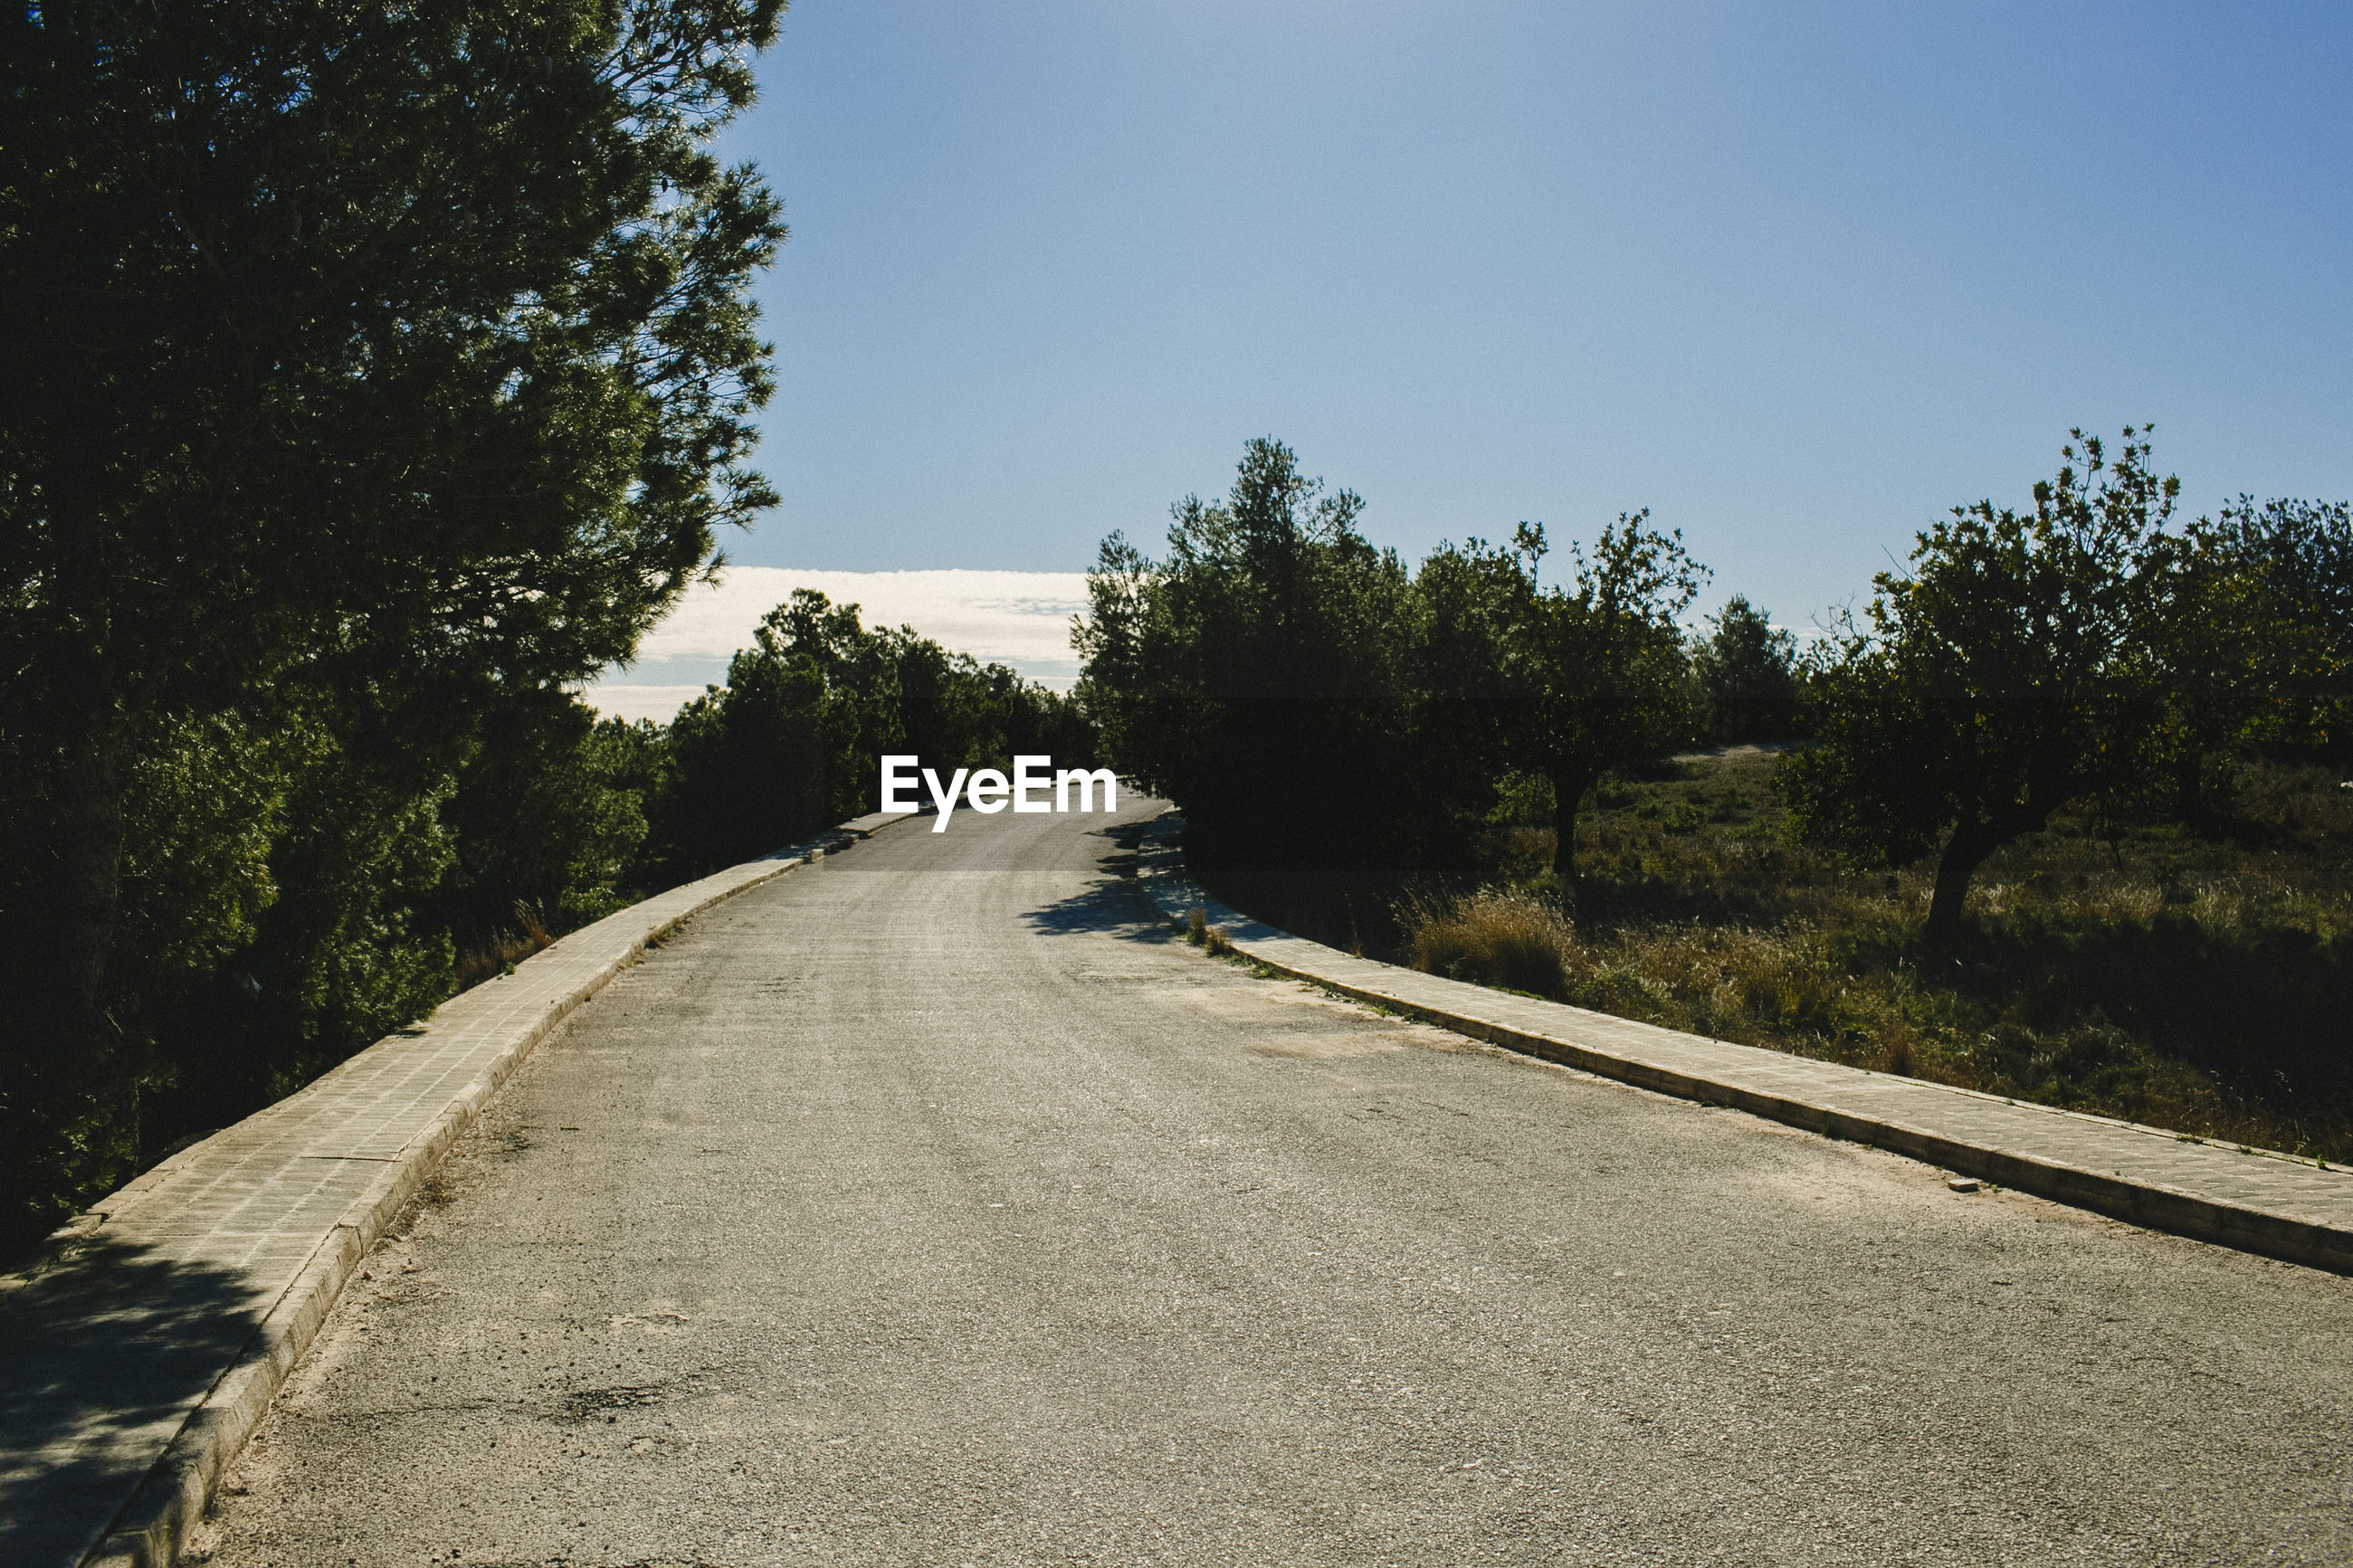 Empty road along trees and plants